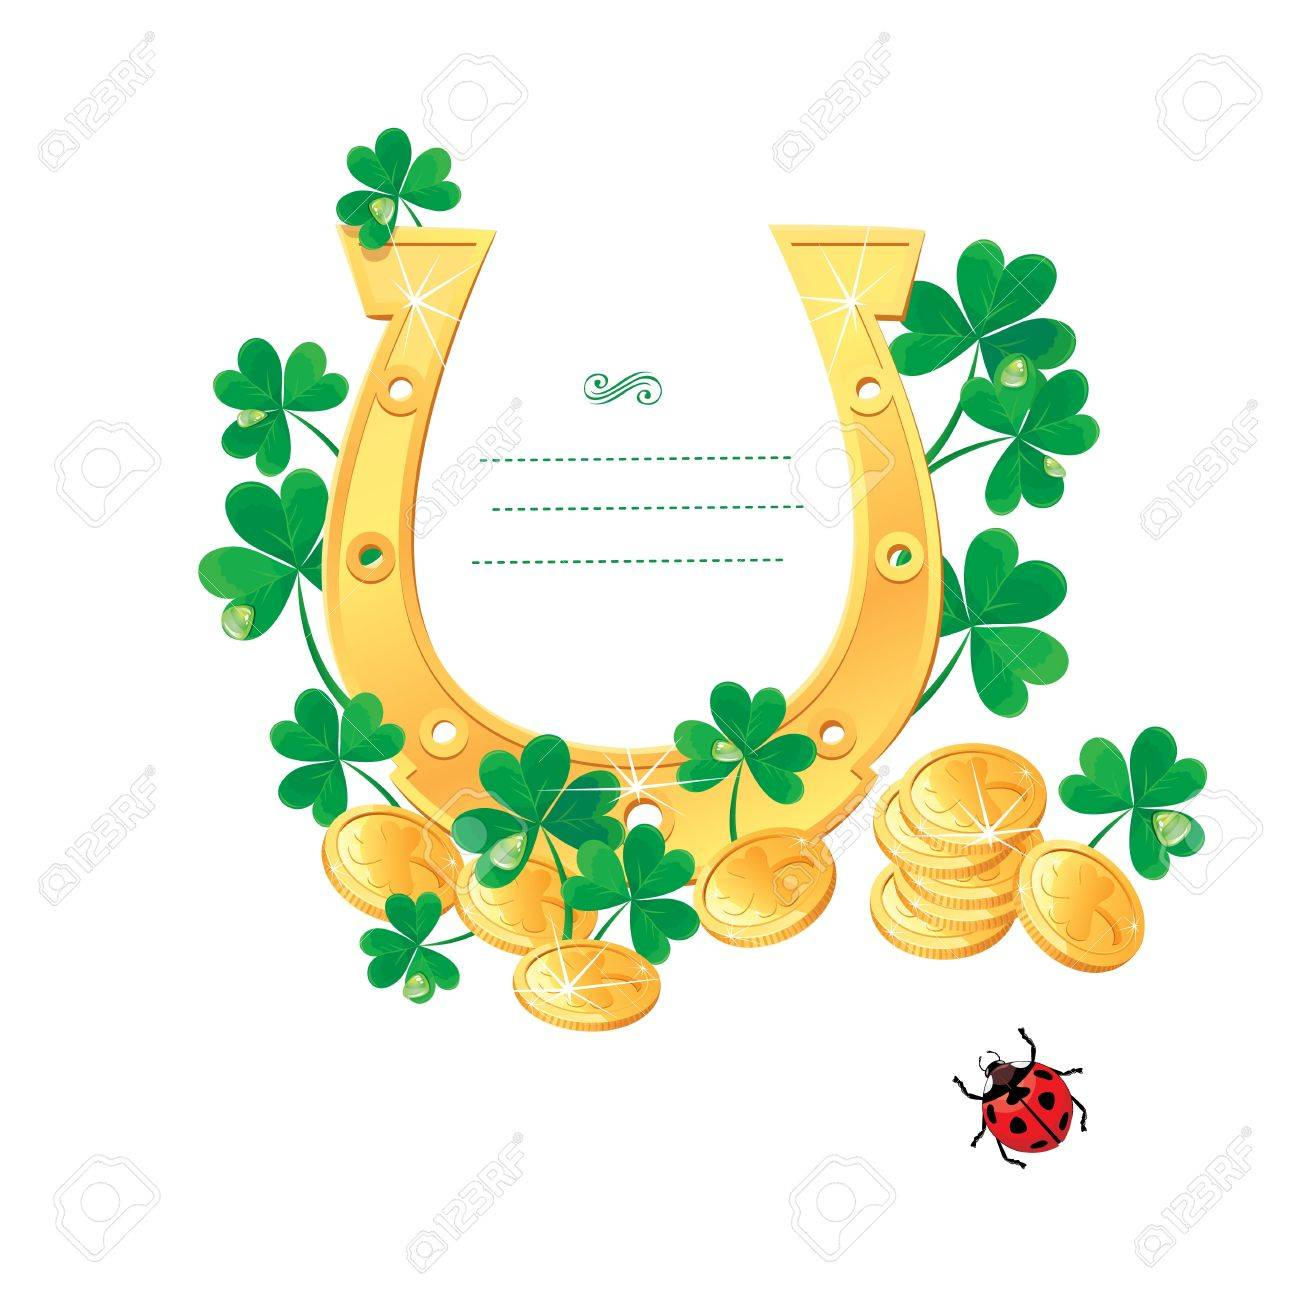 Frame for Saint Patrick Stock Vector - 17850143